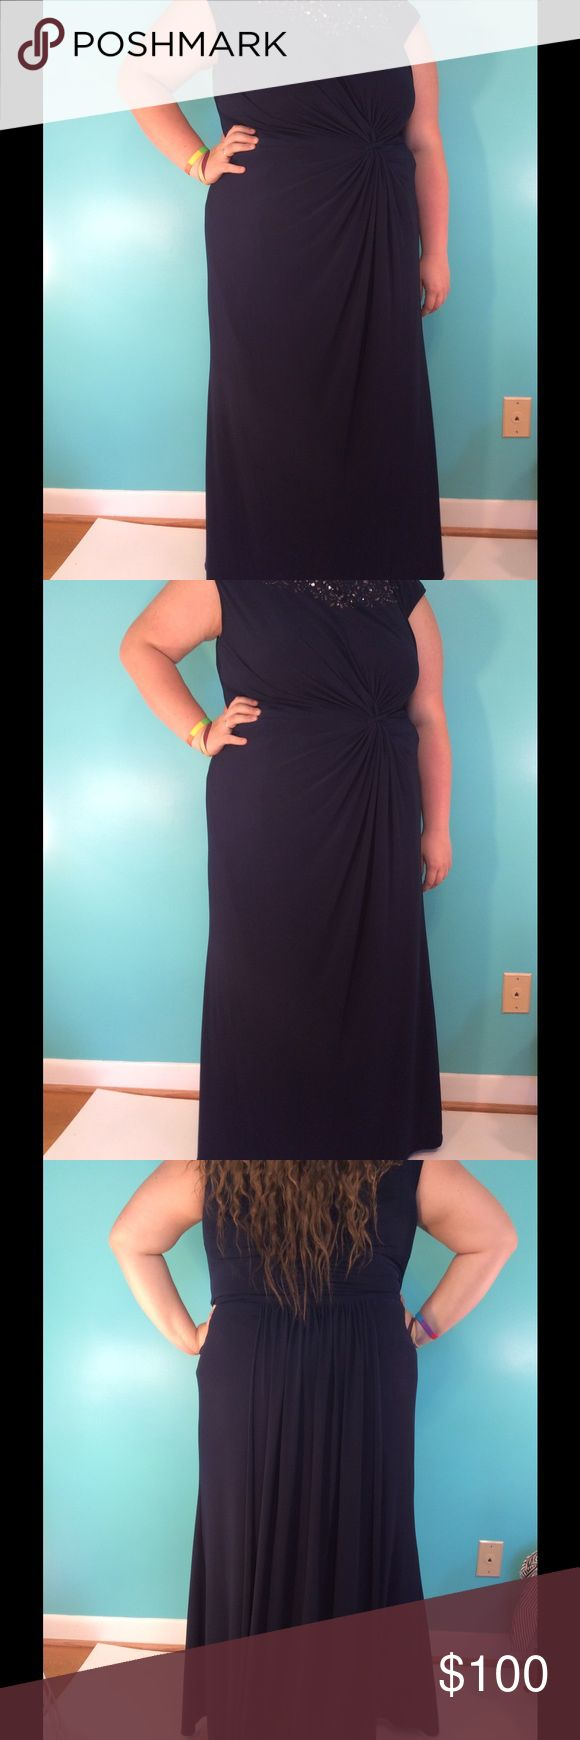 CLEARANCE Prom dress This navy blue dress is great for prom, weddings, and other formal occasions. It has jewels on the top along the neck line. There is also a train in the back that is the length of the dress Ignite Evenings Dresses Prom